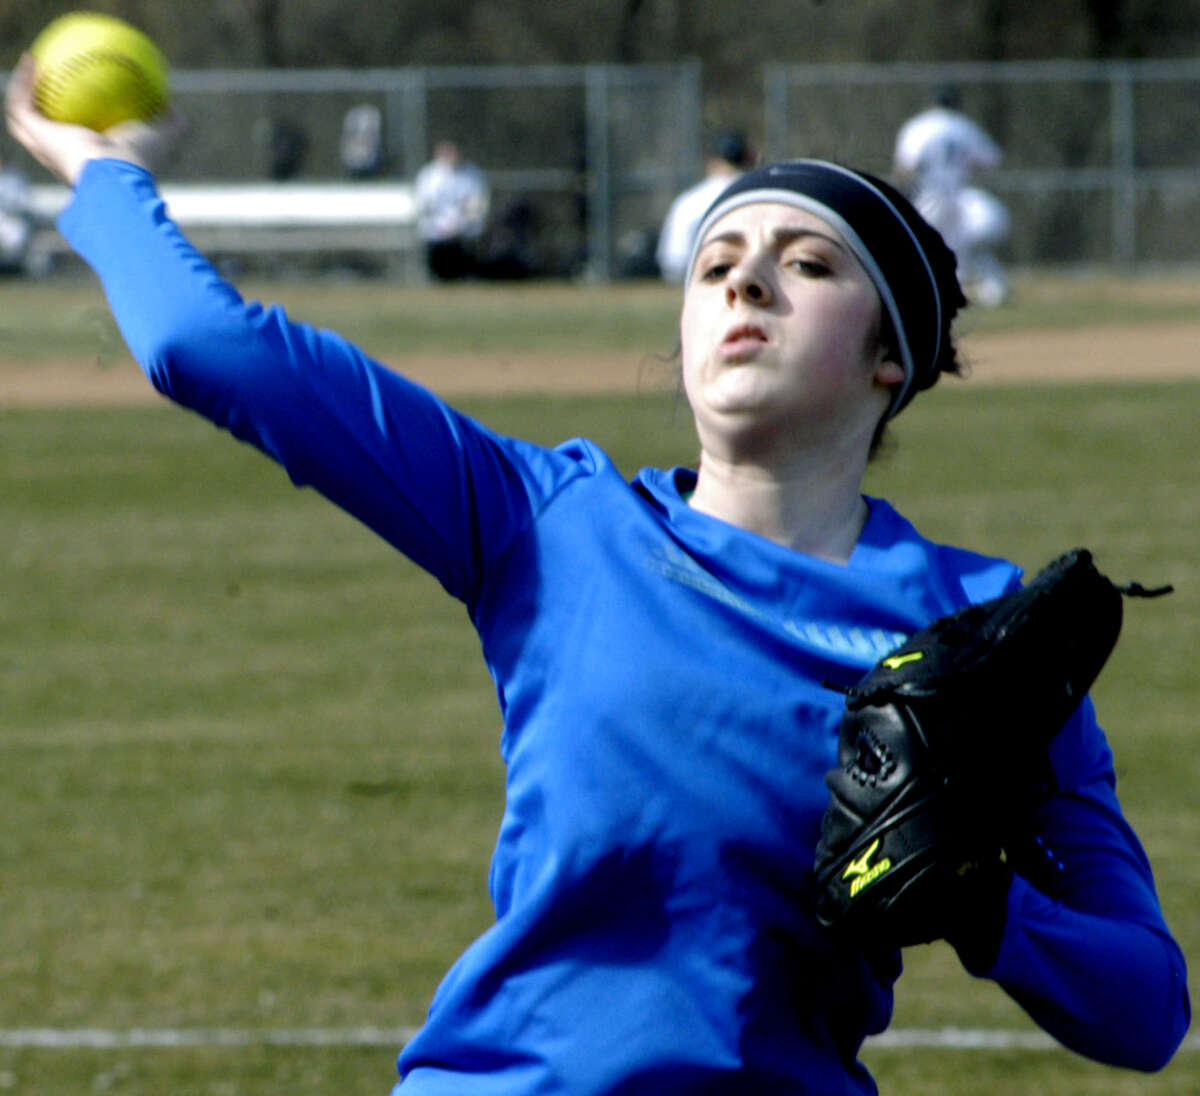 The Green Wave's Emily Willson will patrol centerfield this spring for New Milford High School softball. April 2013